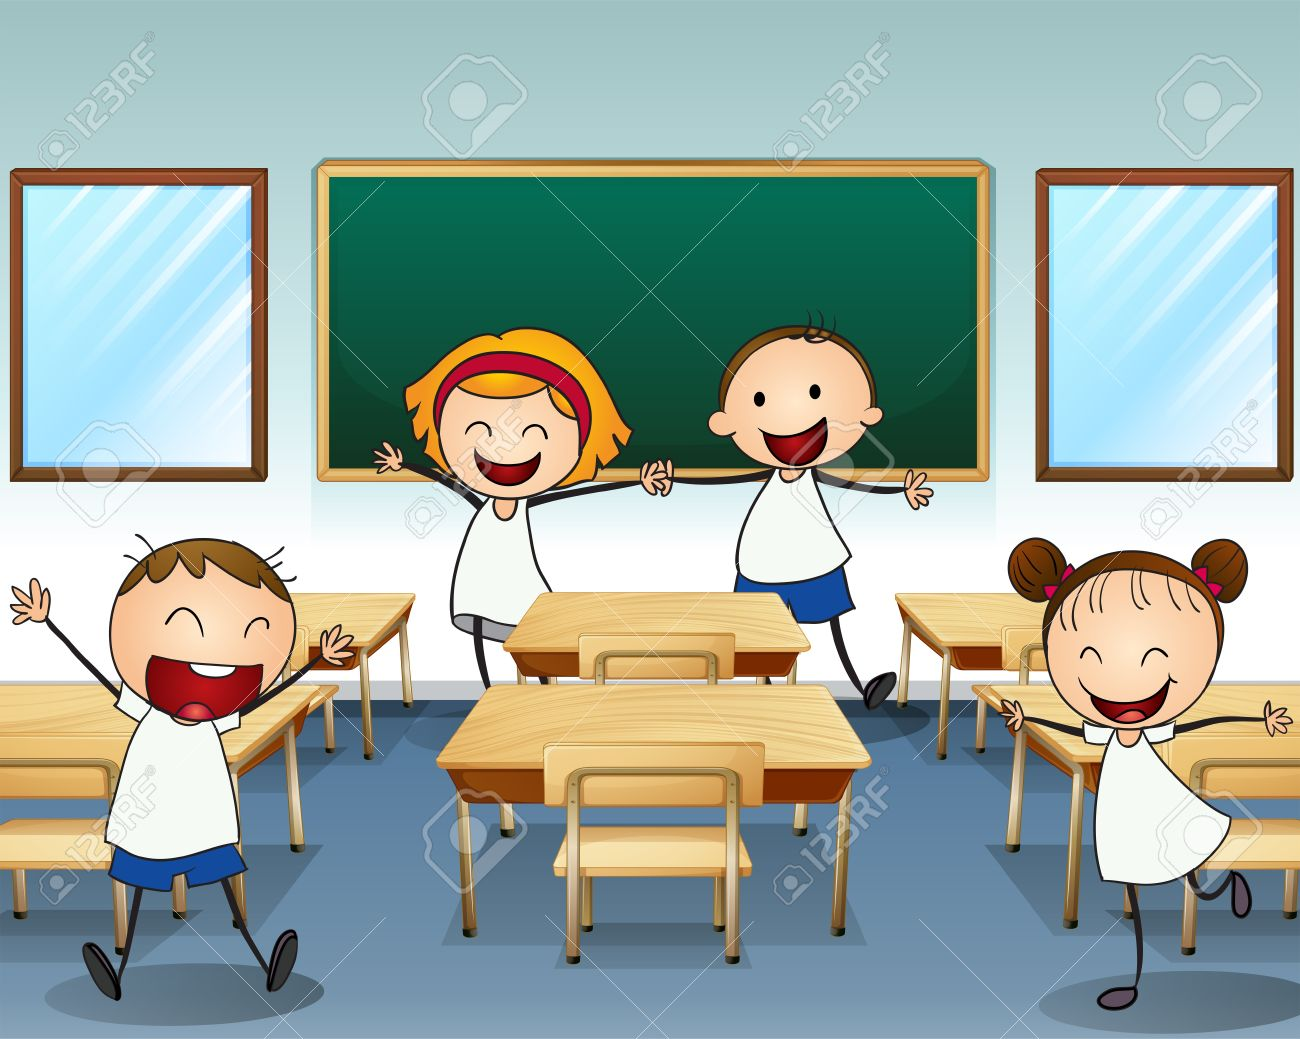 Table and chairs clipart clipart kid -  Classroom Table And Chairs Clipart